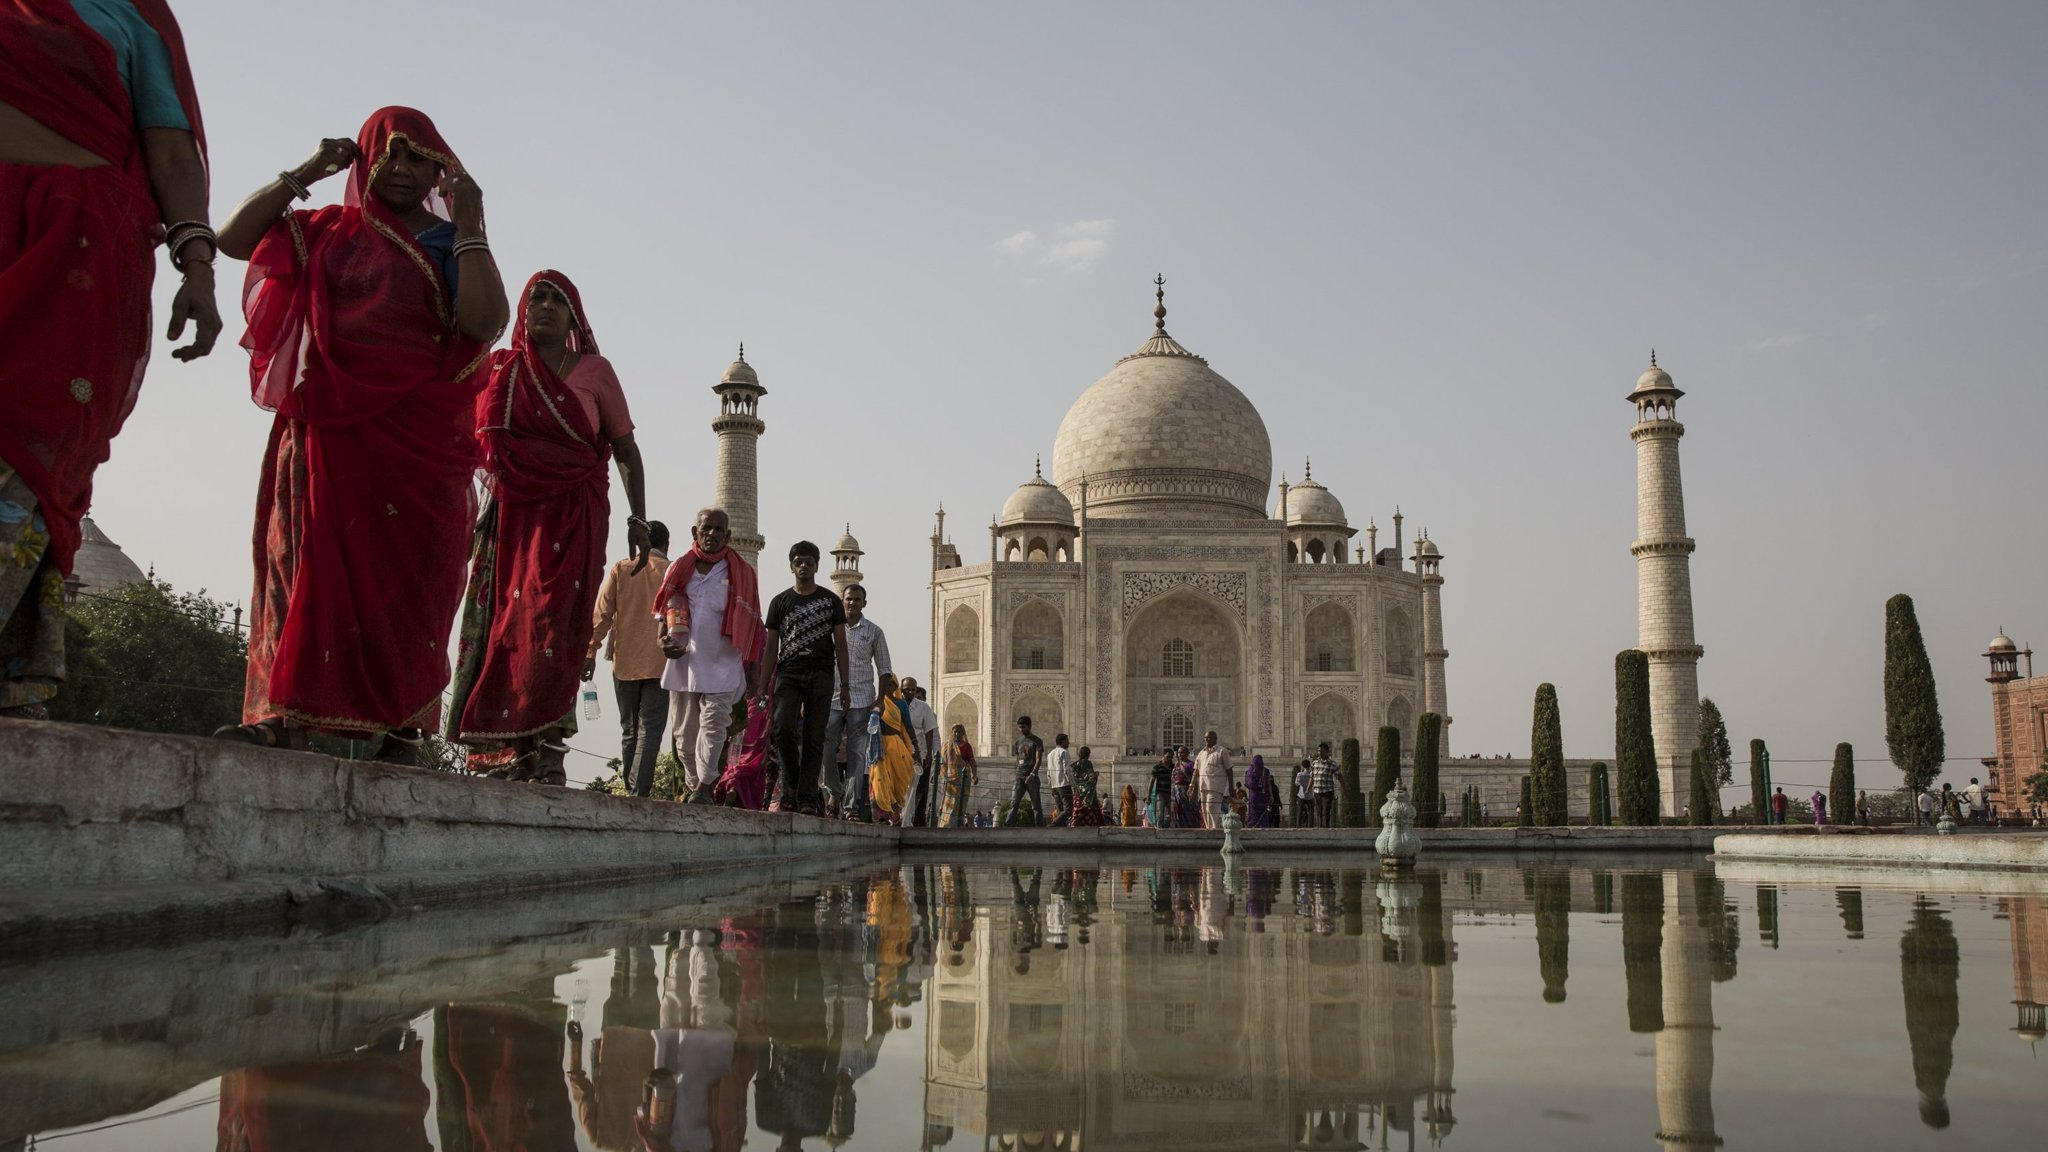 The Taj Mahal is caught in a tug of war over Indian identity